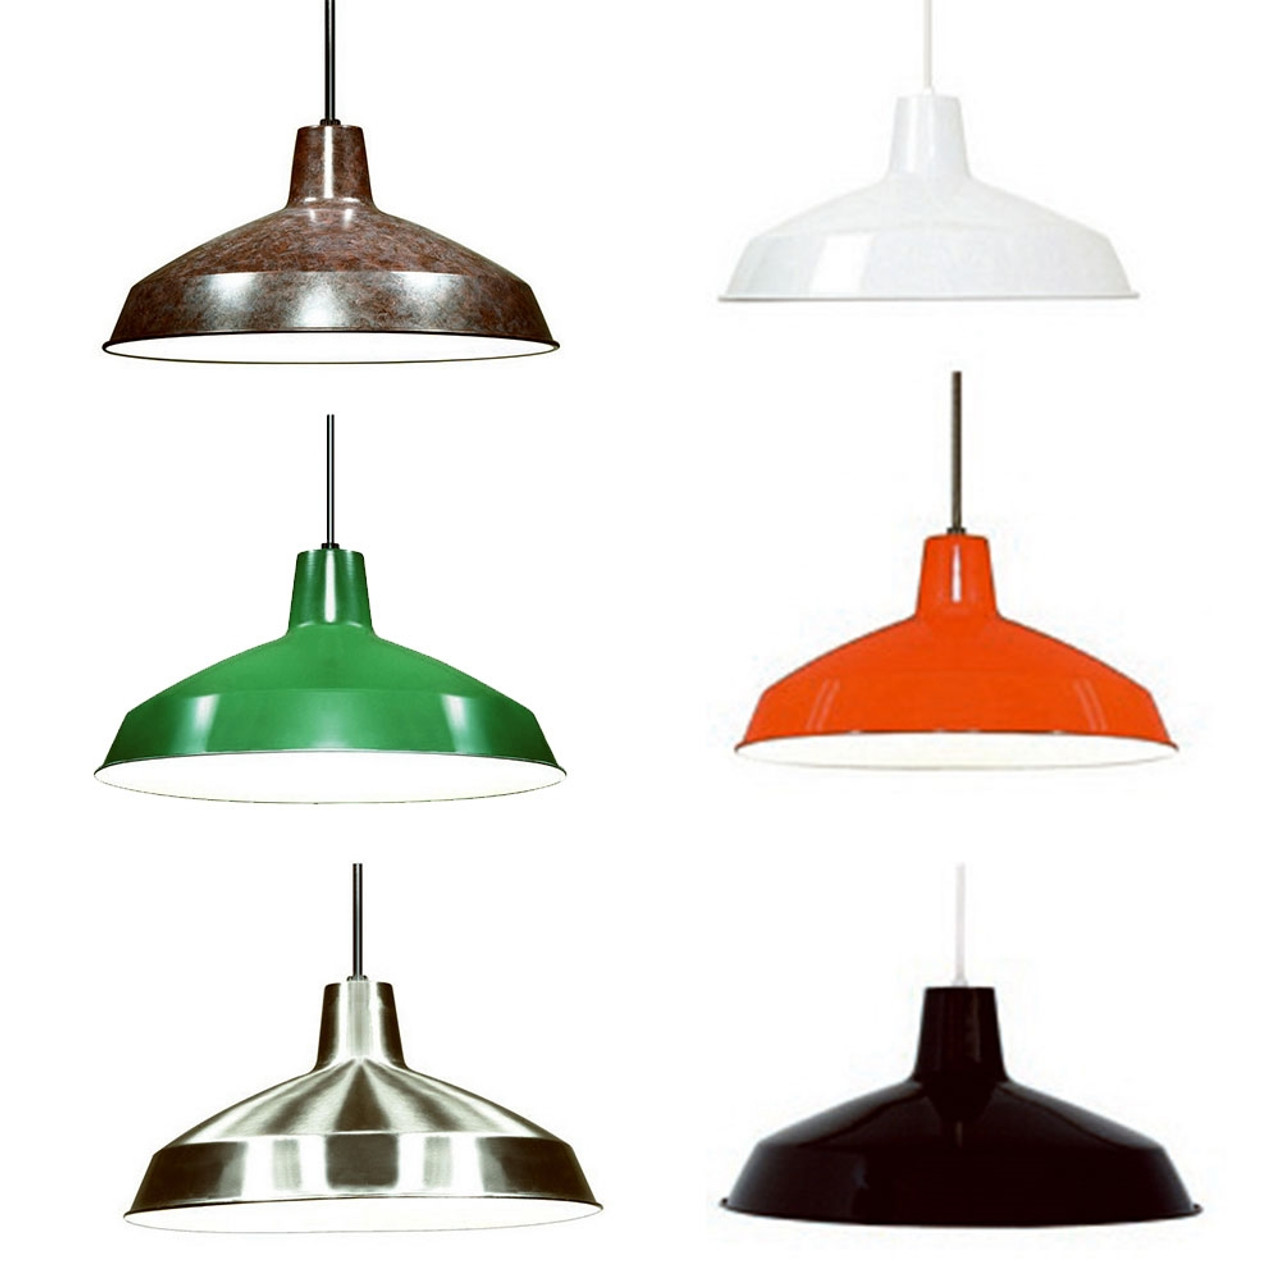 Satco 16 Inch Diameter Warehouse Style Pendant Light Fixtures Choose Light Brushed Nickel Old Bronze Or Light Green